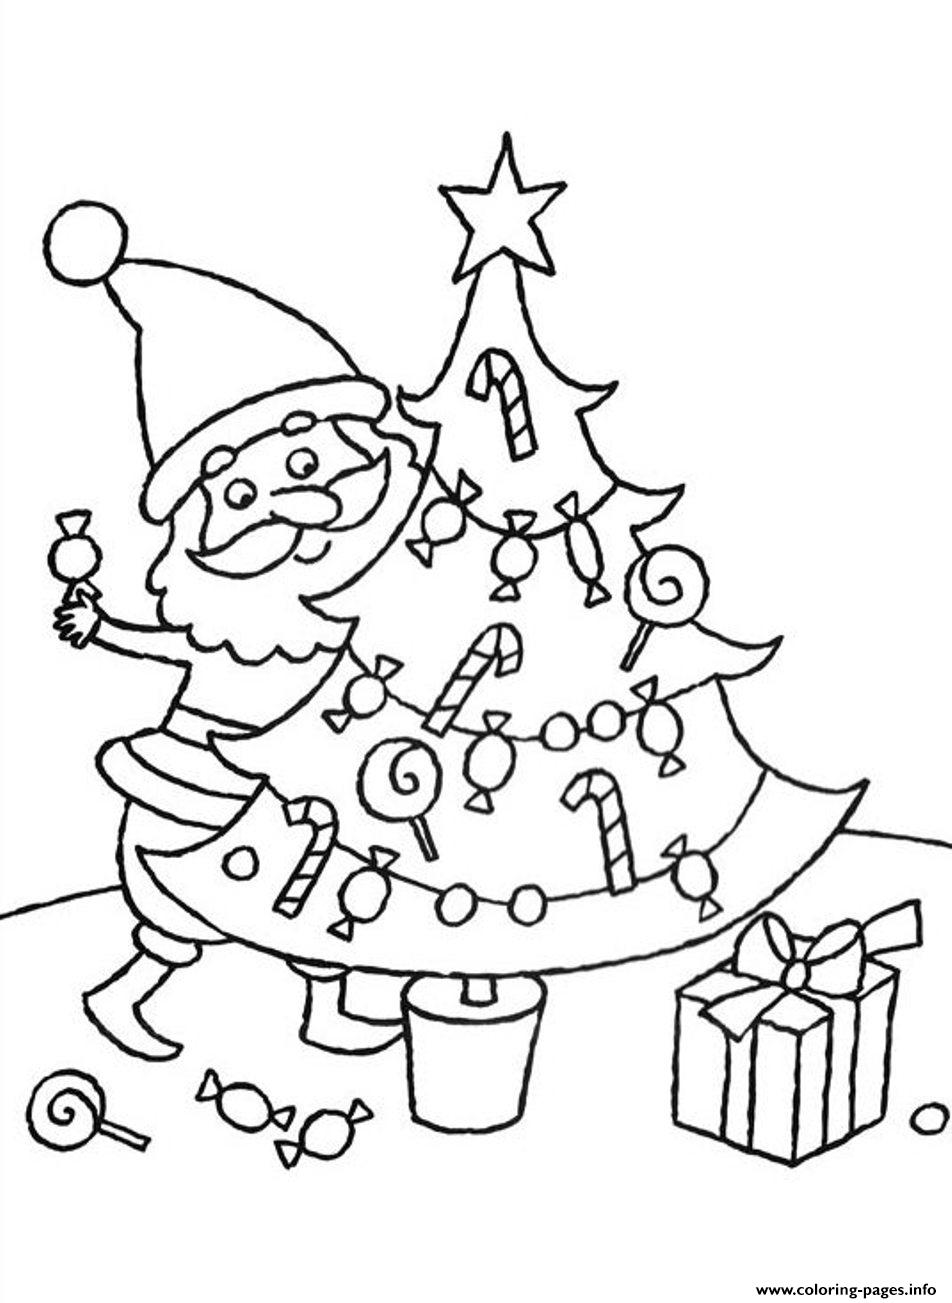 Xmas Coloring Sheets Free Coloring Pages Free New Coloring Pages ... | 1303x952